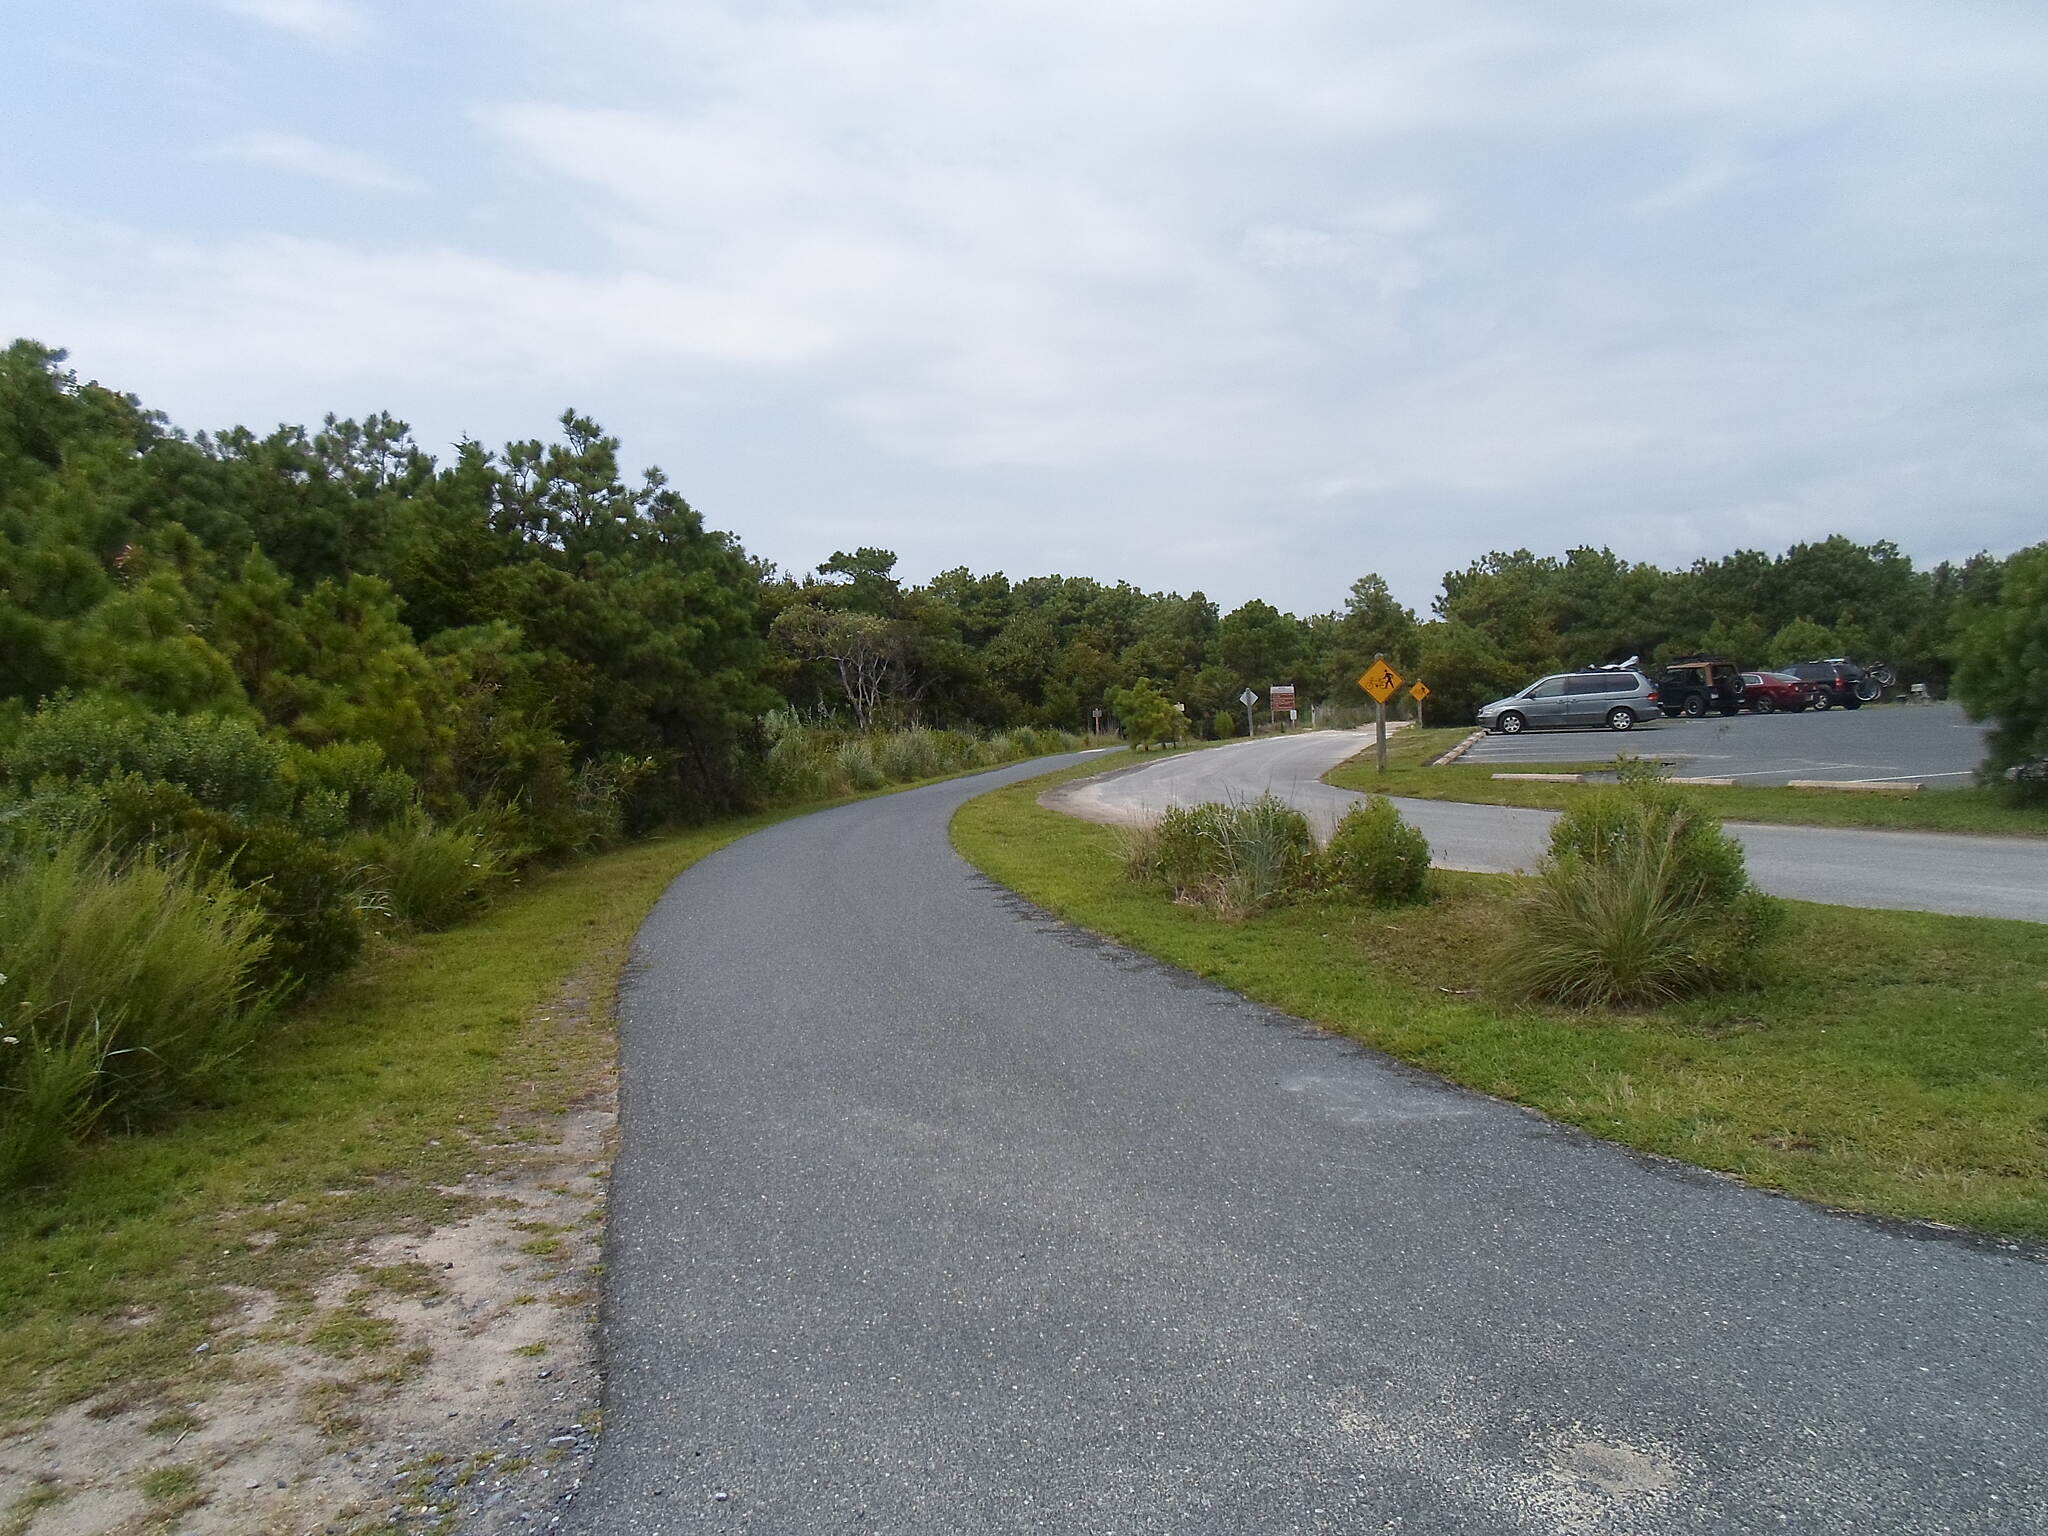 Gordons Pond Trail Gordons Pond Trail Southern terminus at the North Shores community, just north of Rehoboth Beach. Taken July 2015.